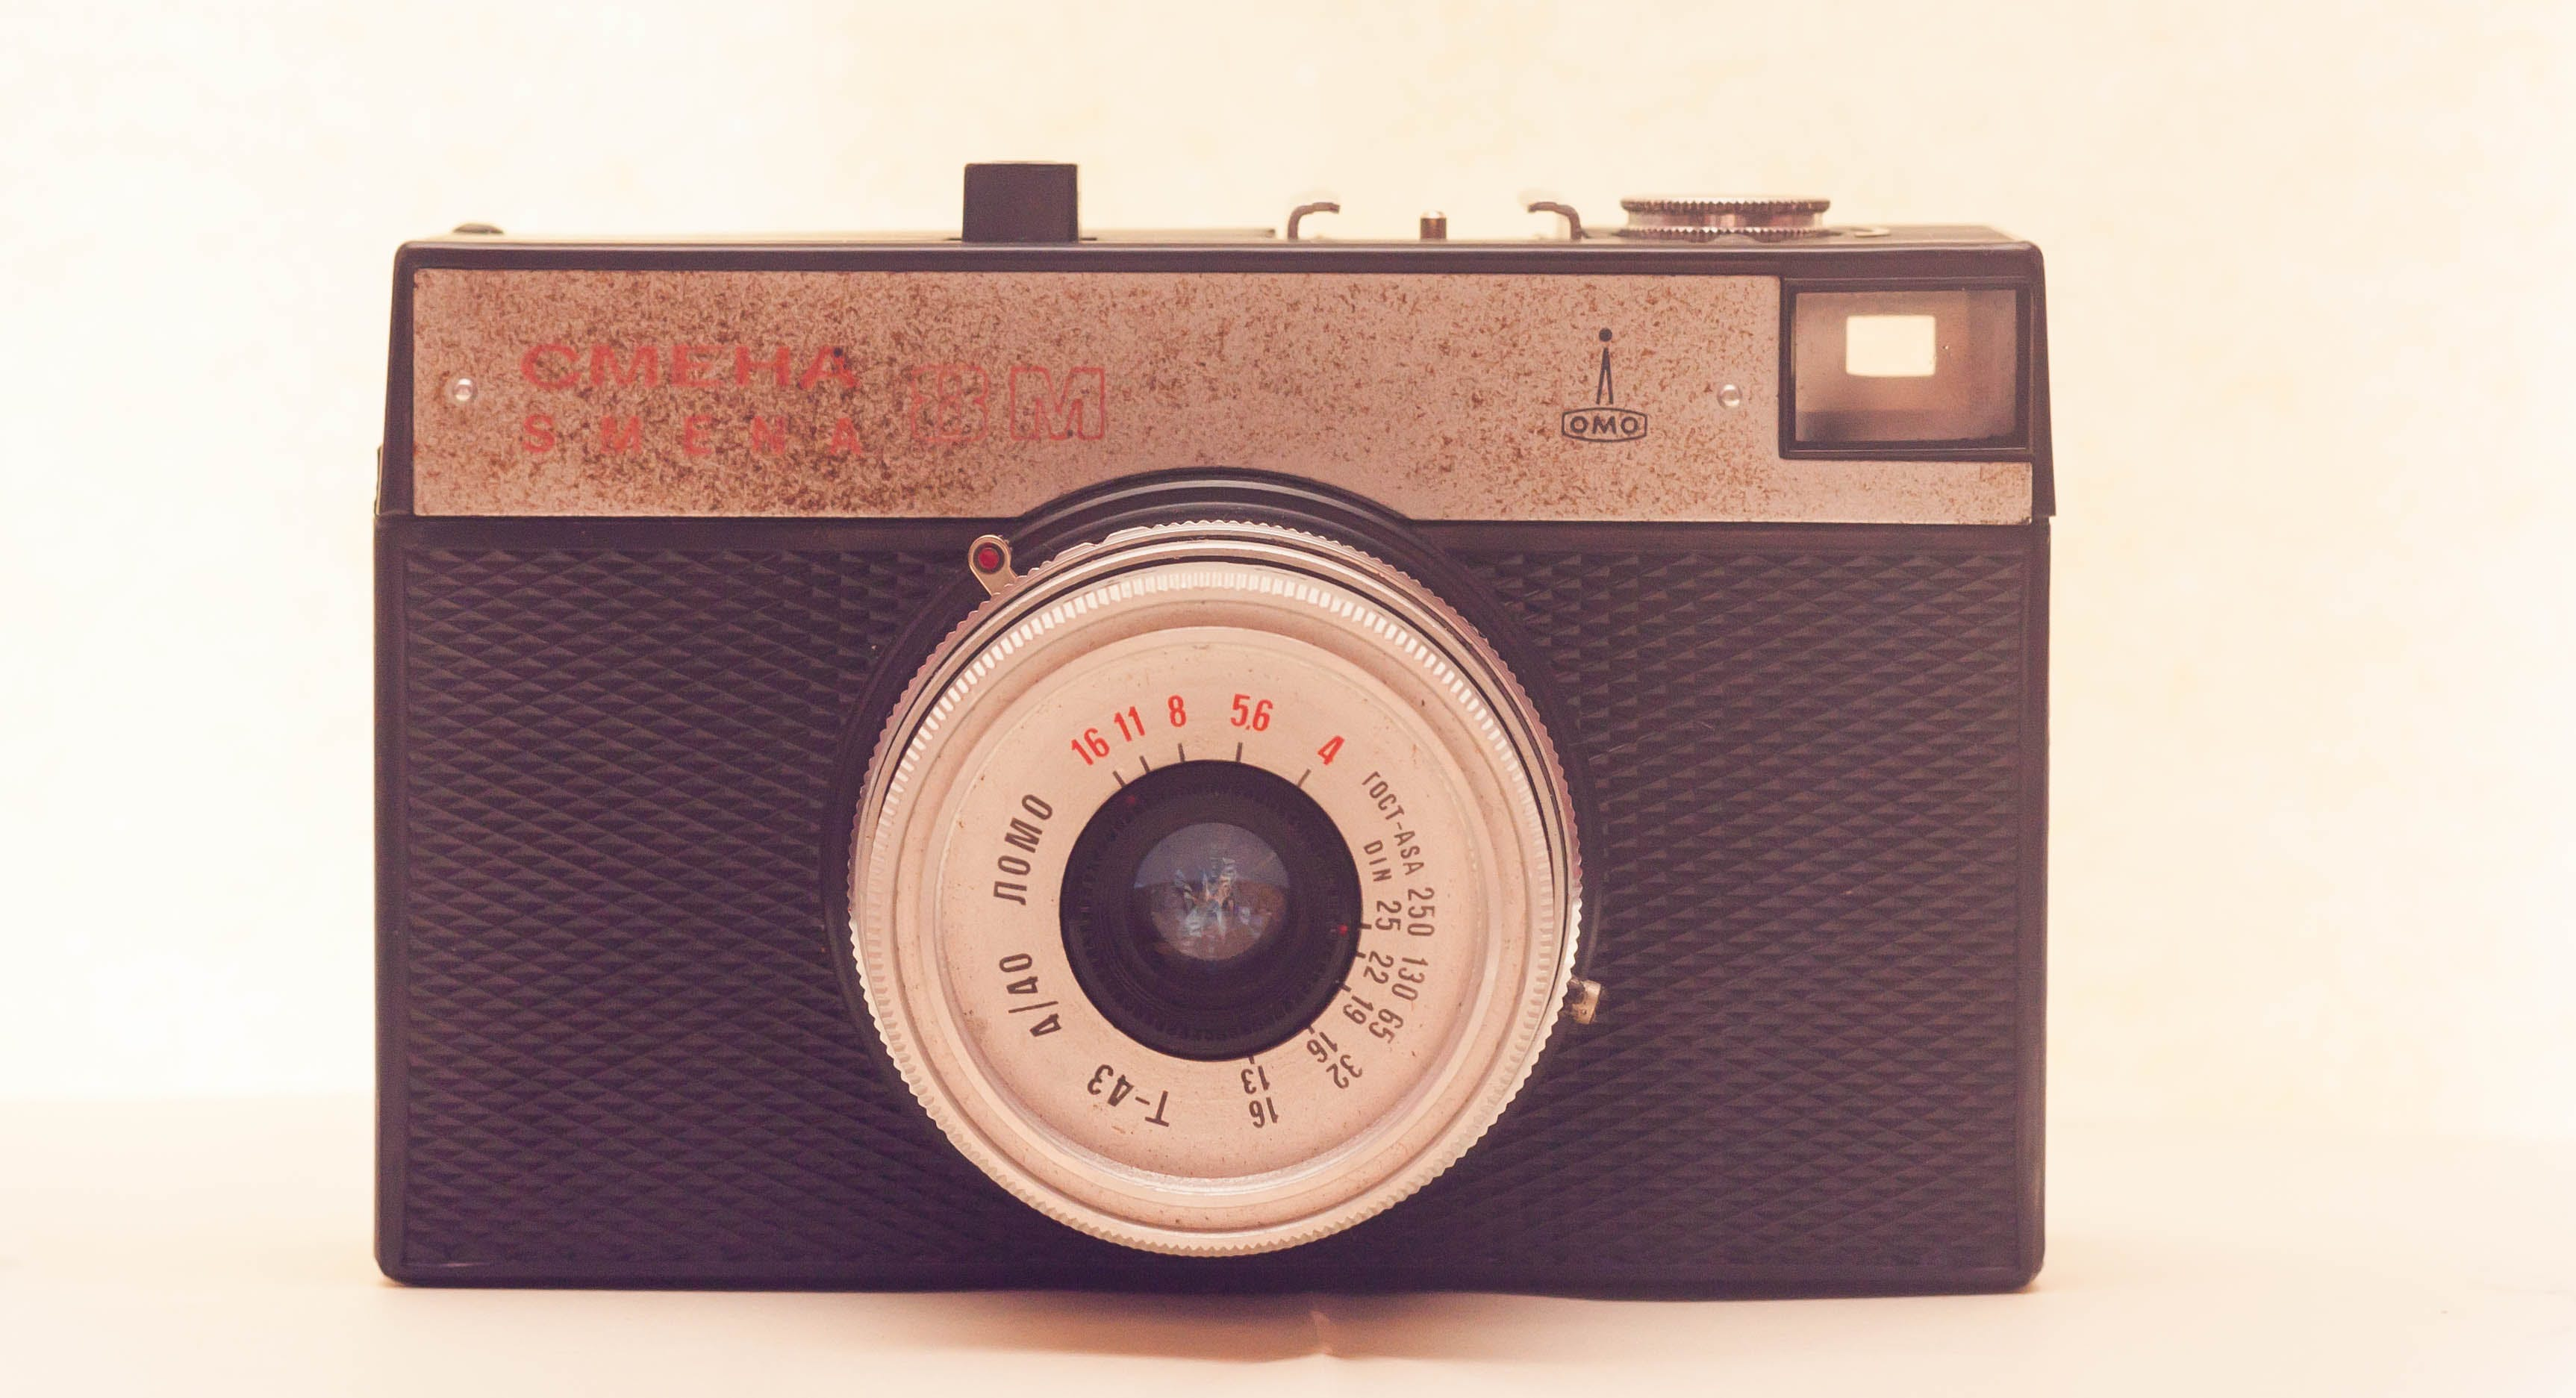 Free stock photo of camera, photography, vintage, analog camera